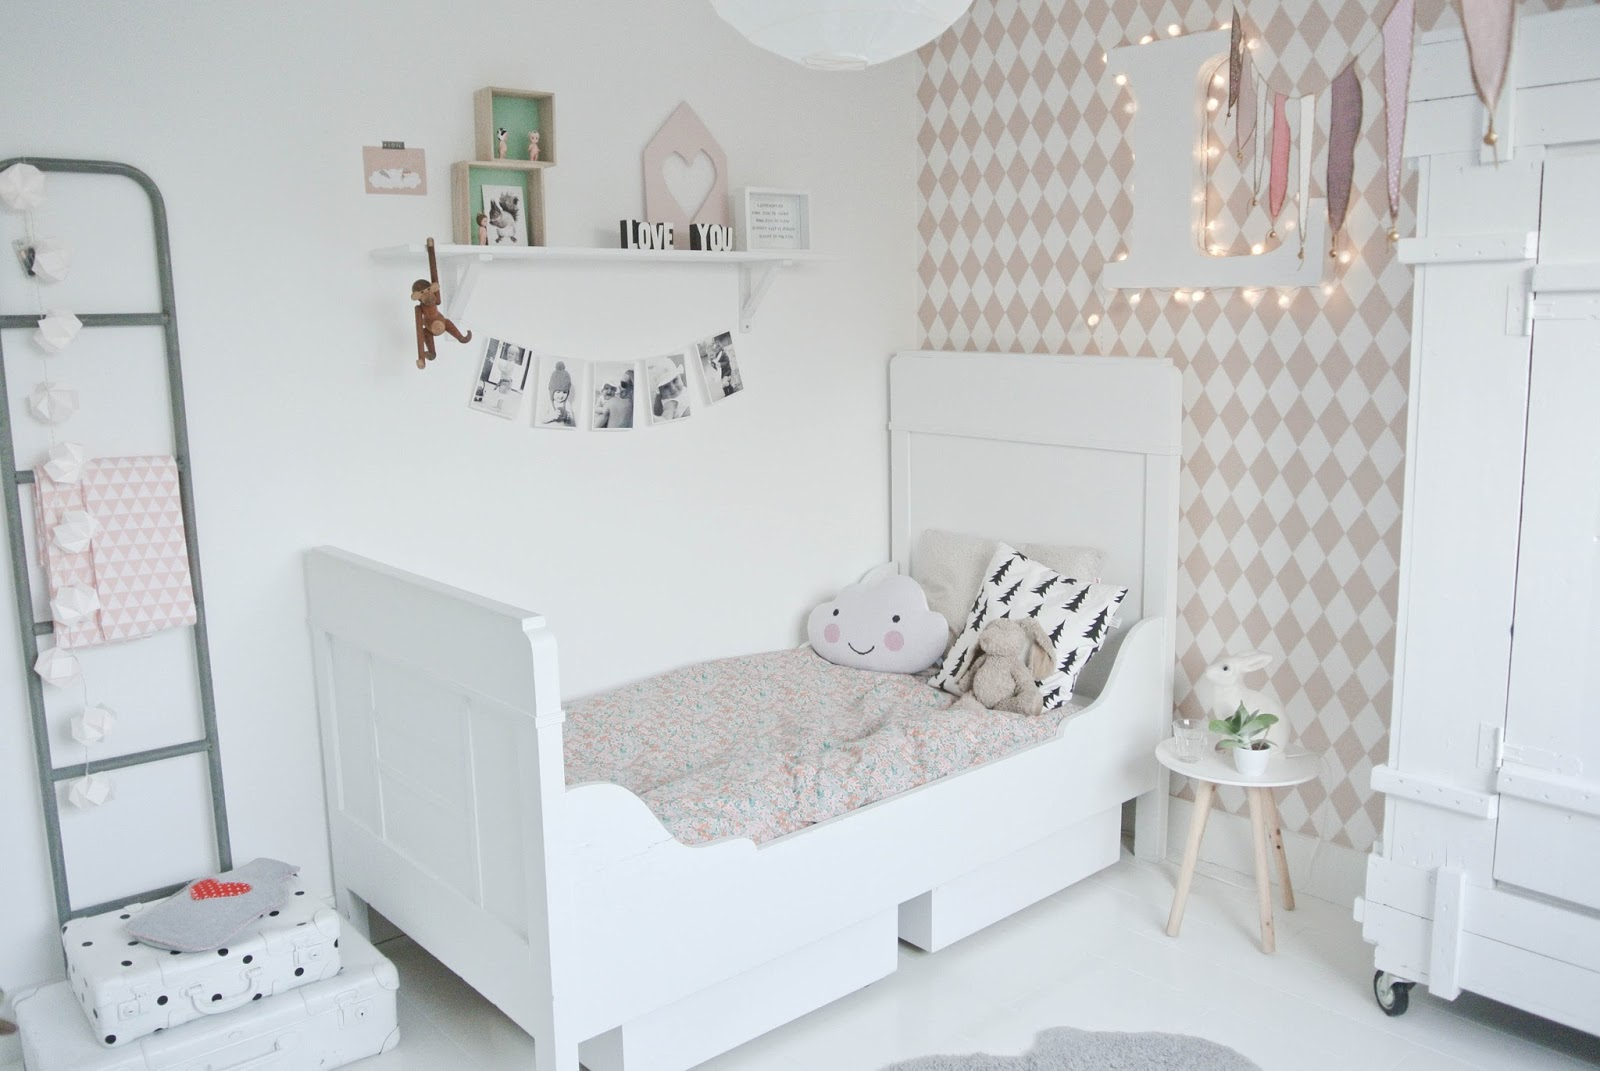 ideas dormitorio infantil